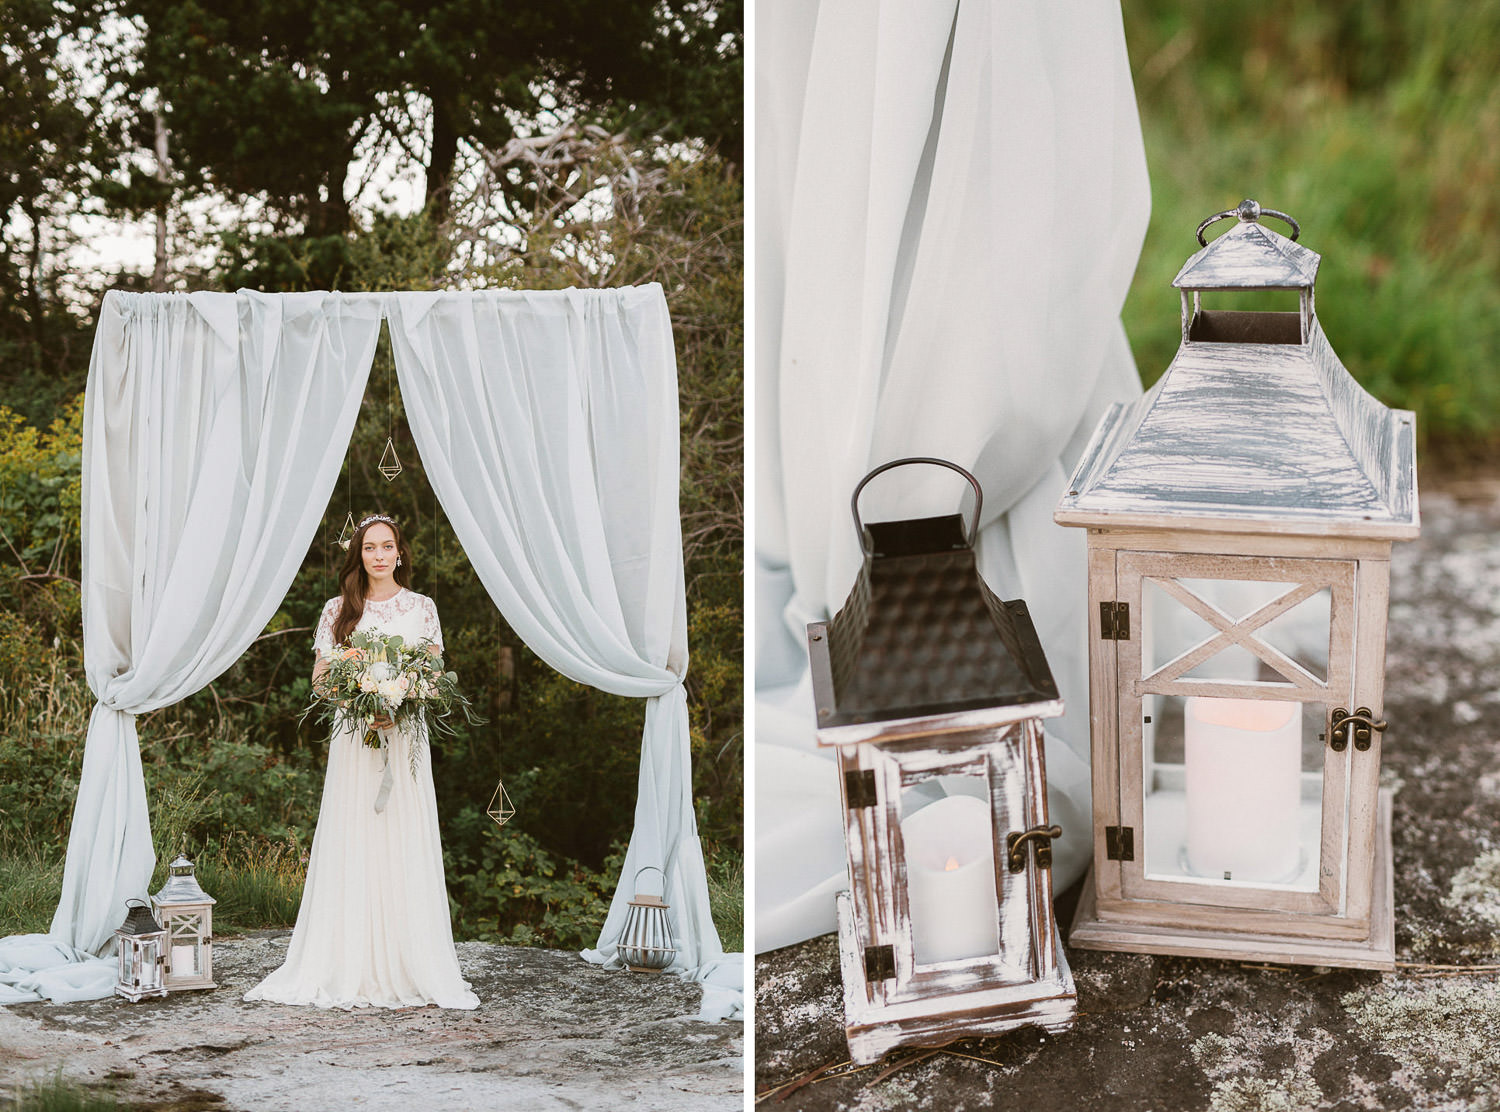 Refined wedding decor for an ethereal boho coastal wedding inspiration